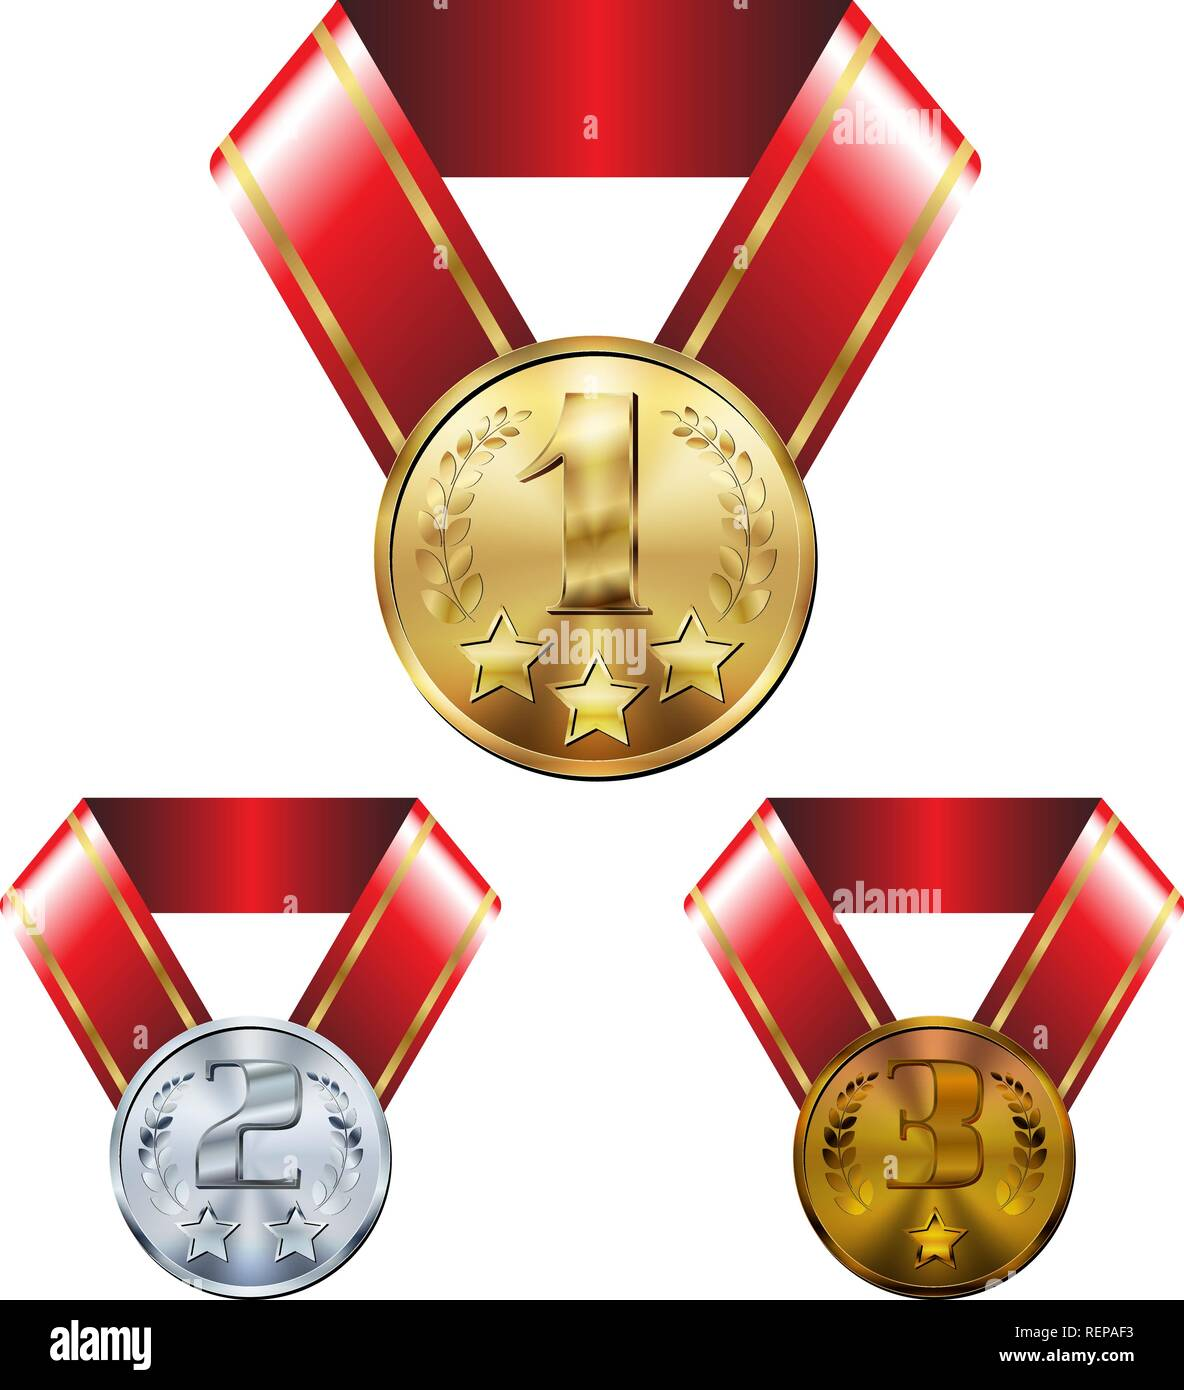 Illustration of gold, silver and bronze medal on red ribbon